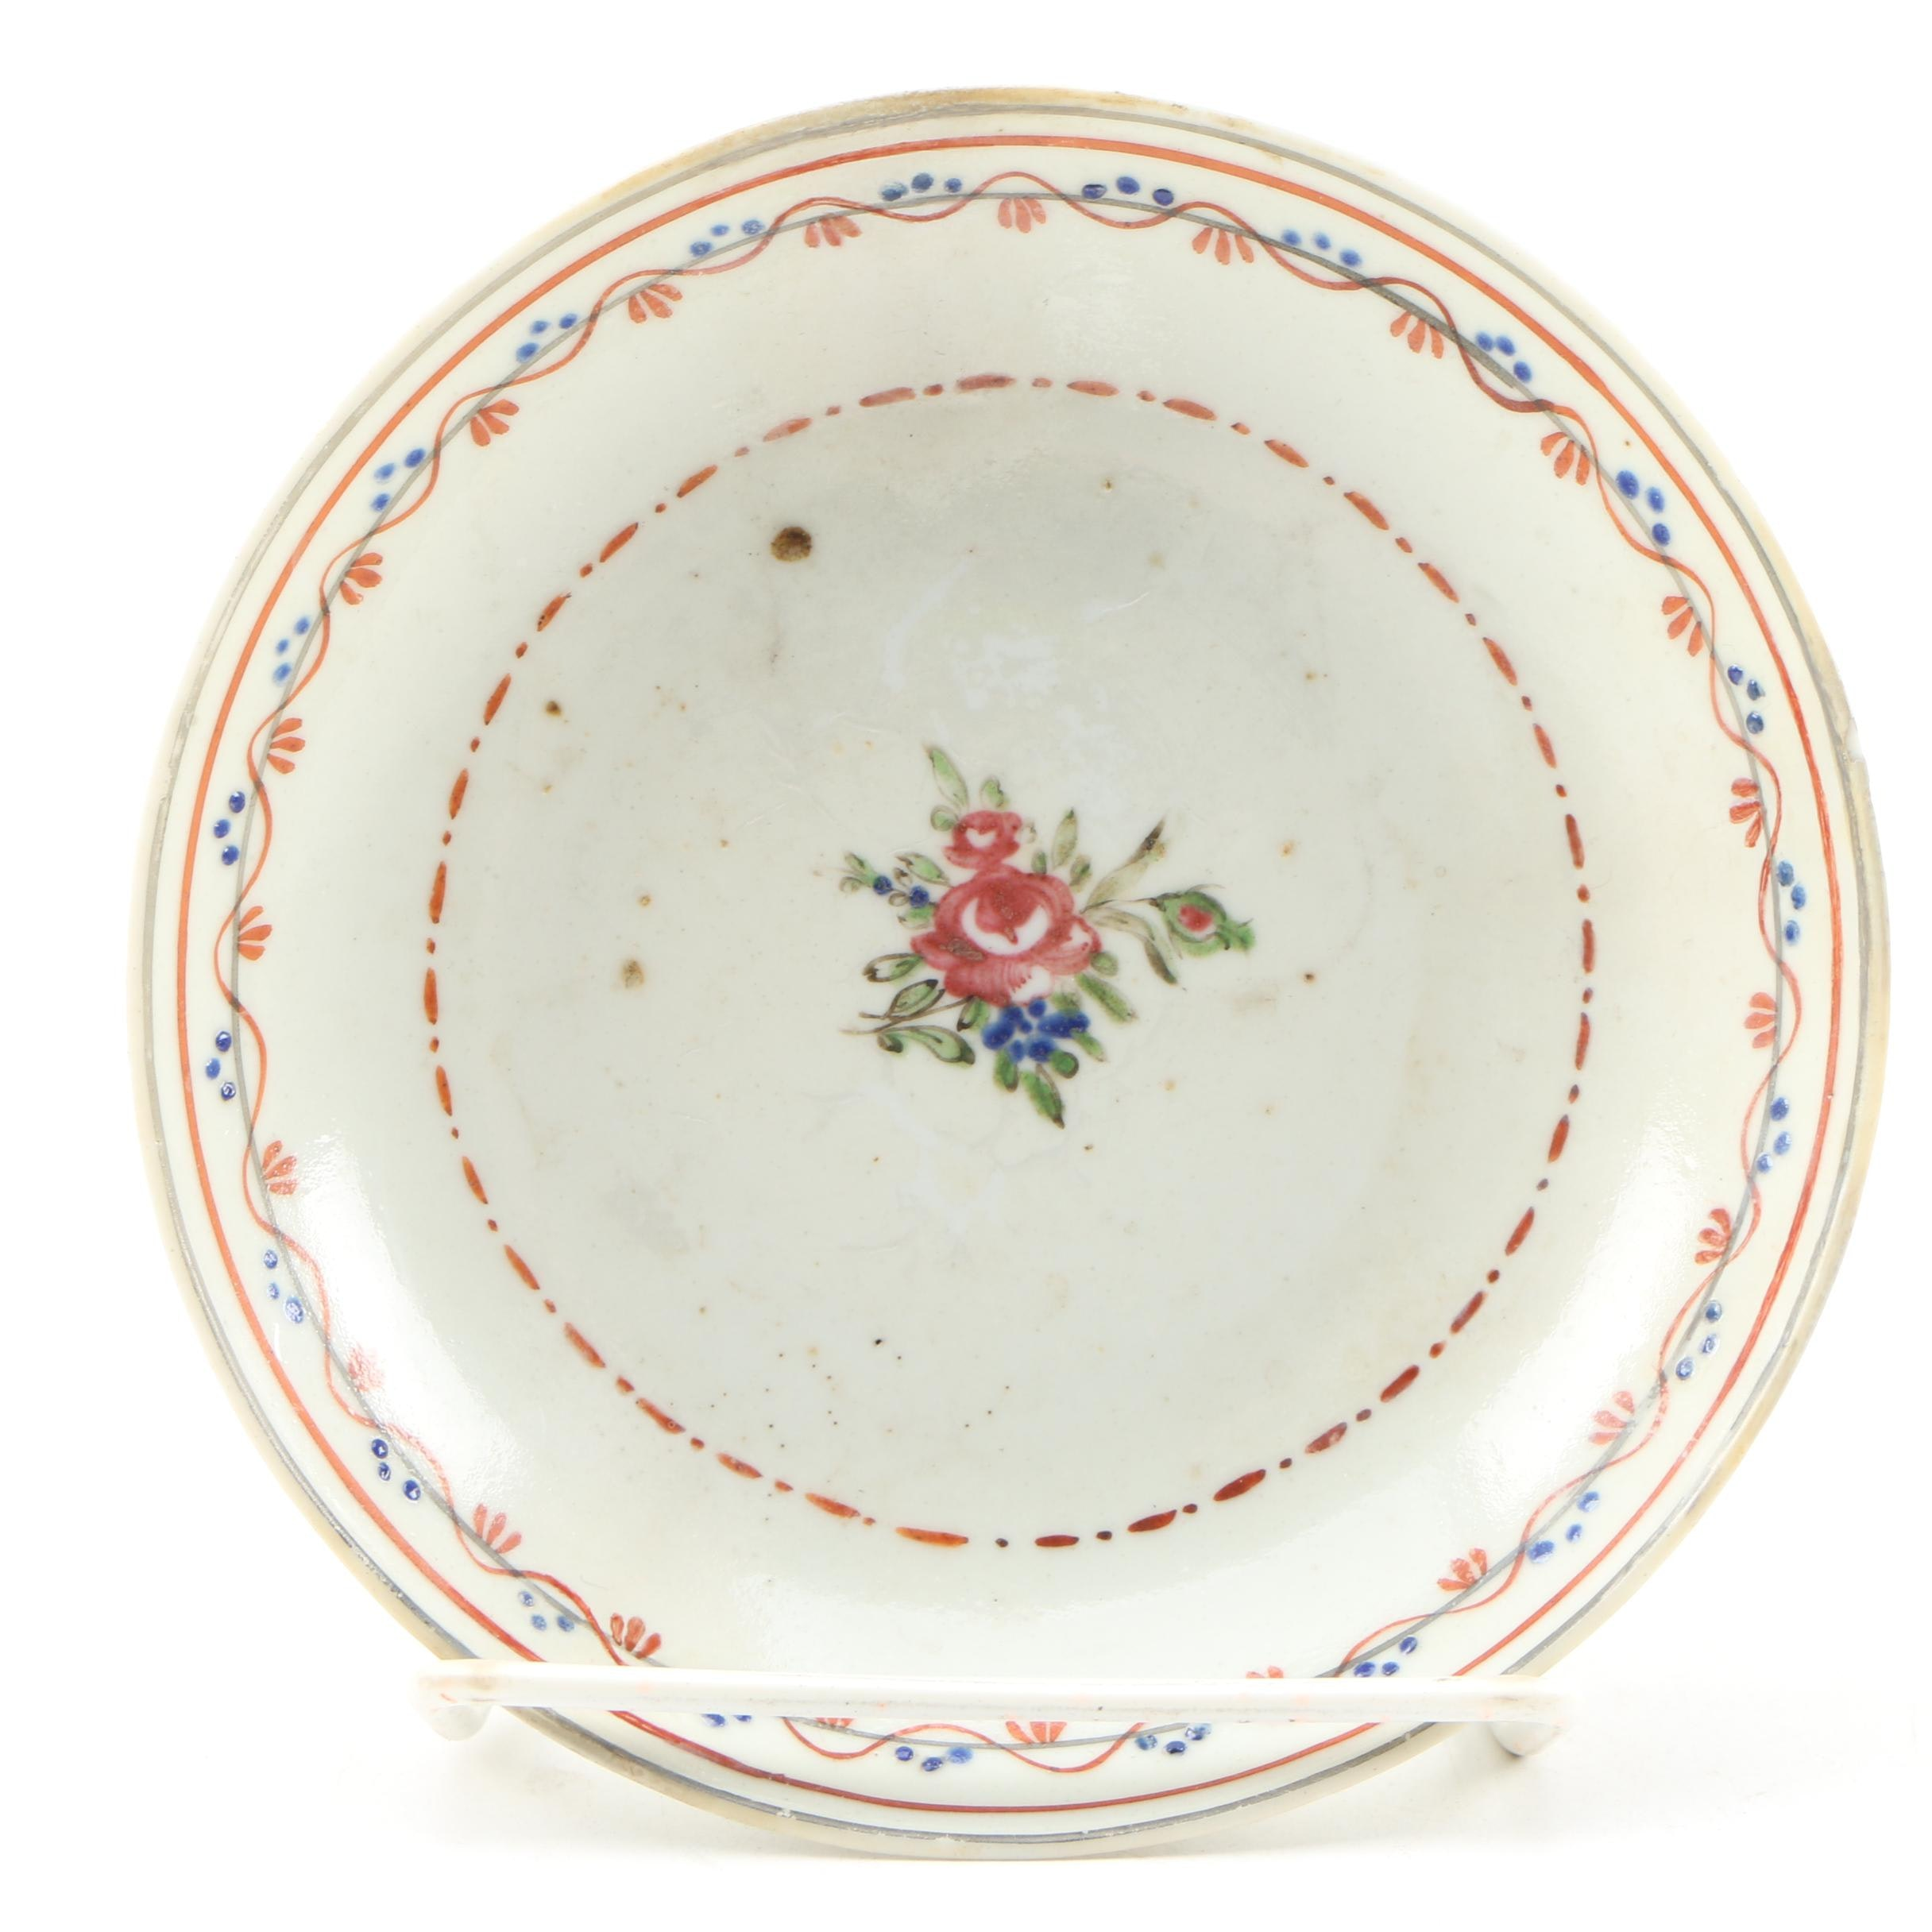 Chinese Export Porcelain Hand-Painted Saucer, 19th Century